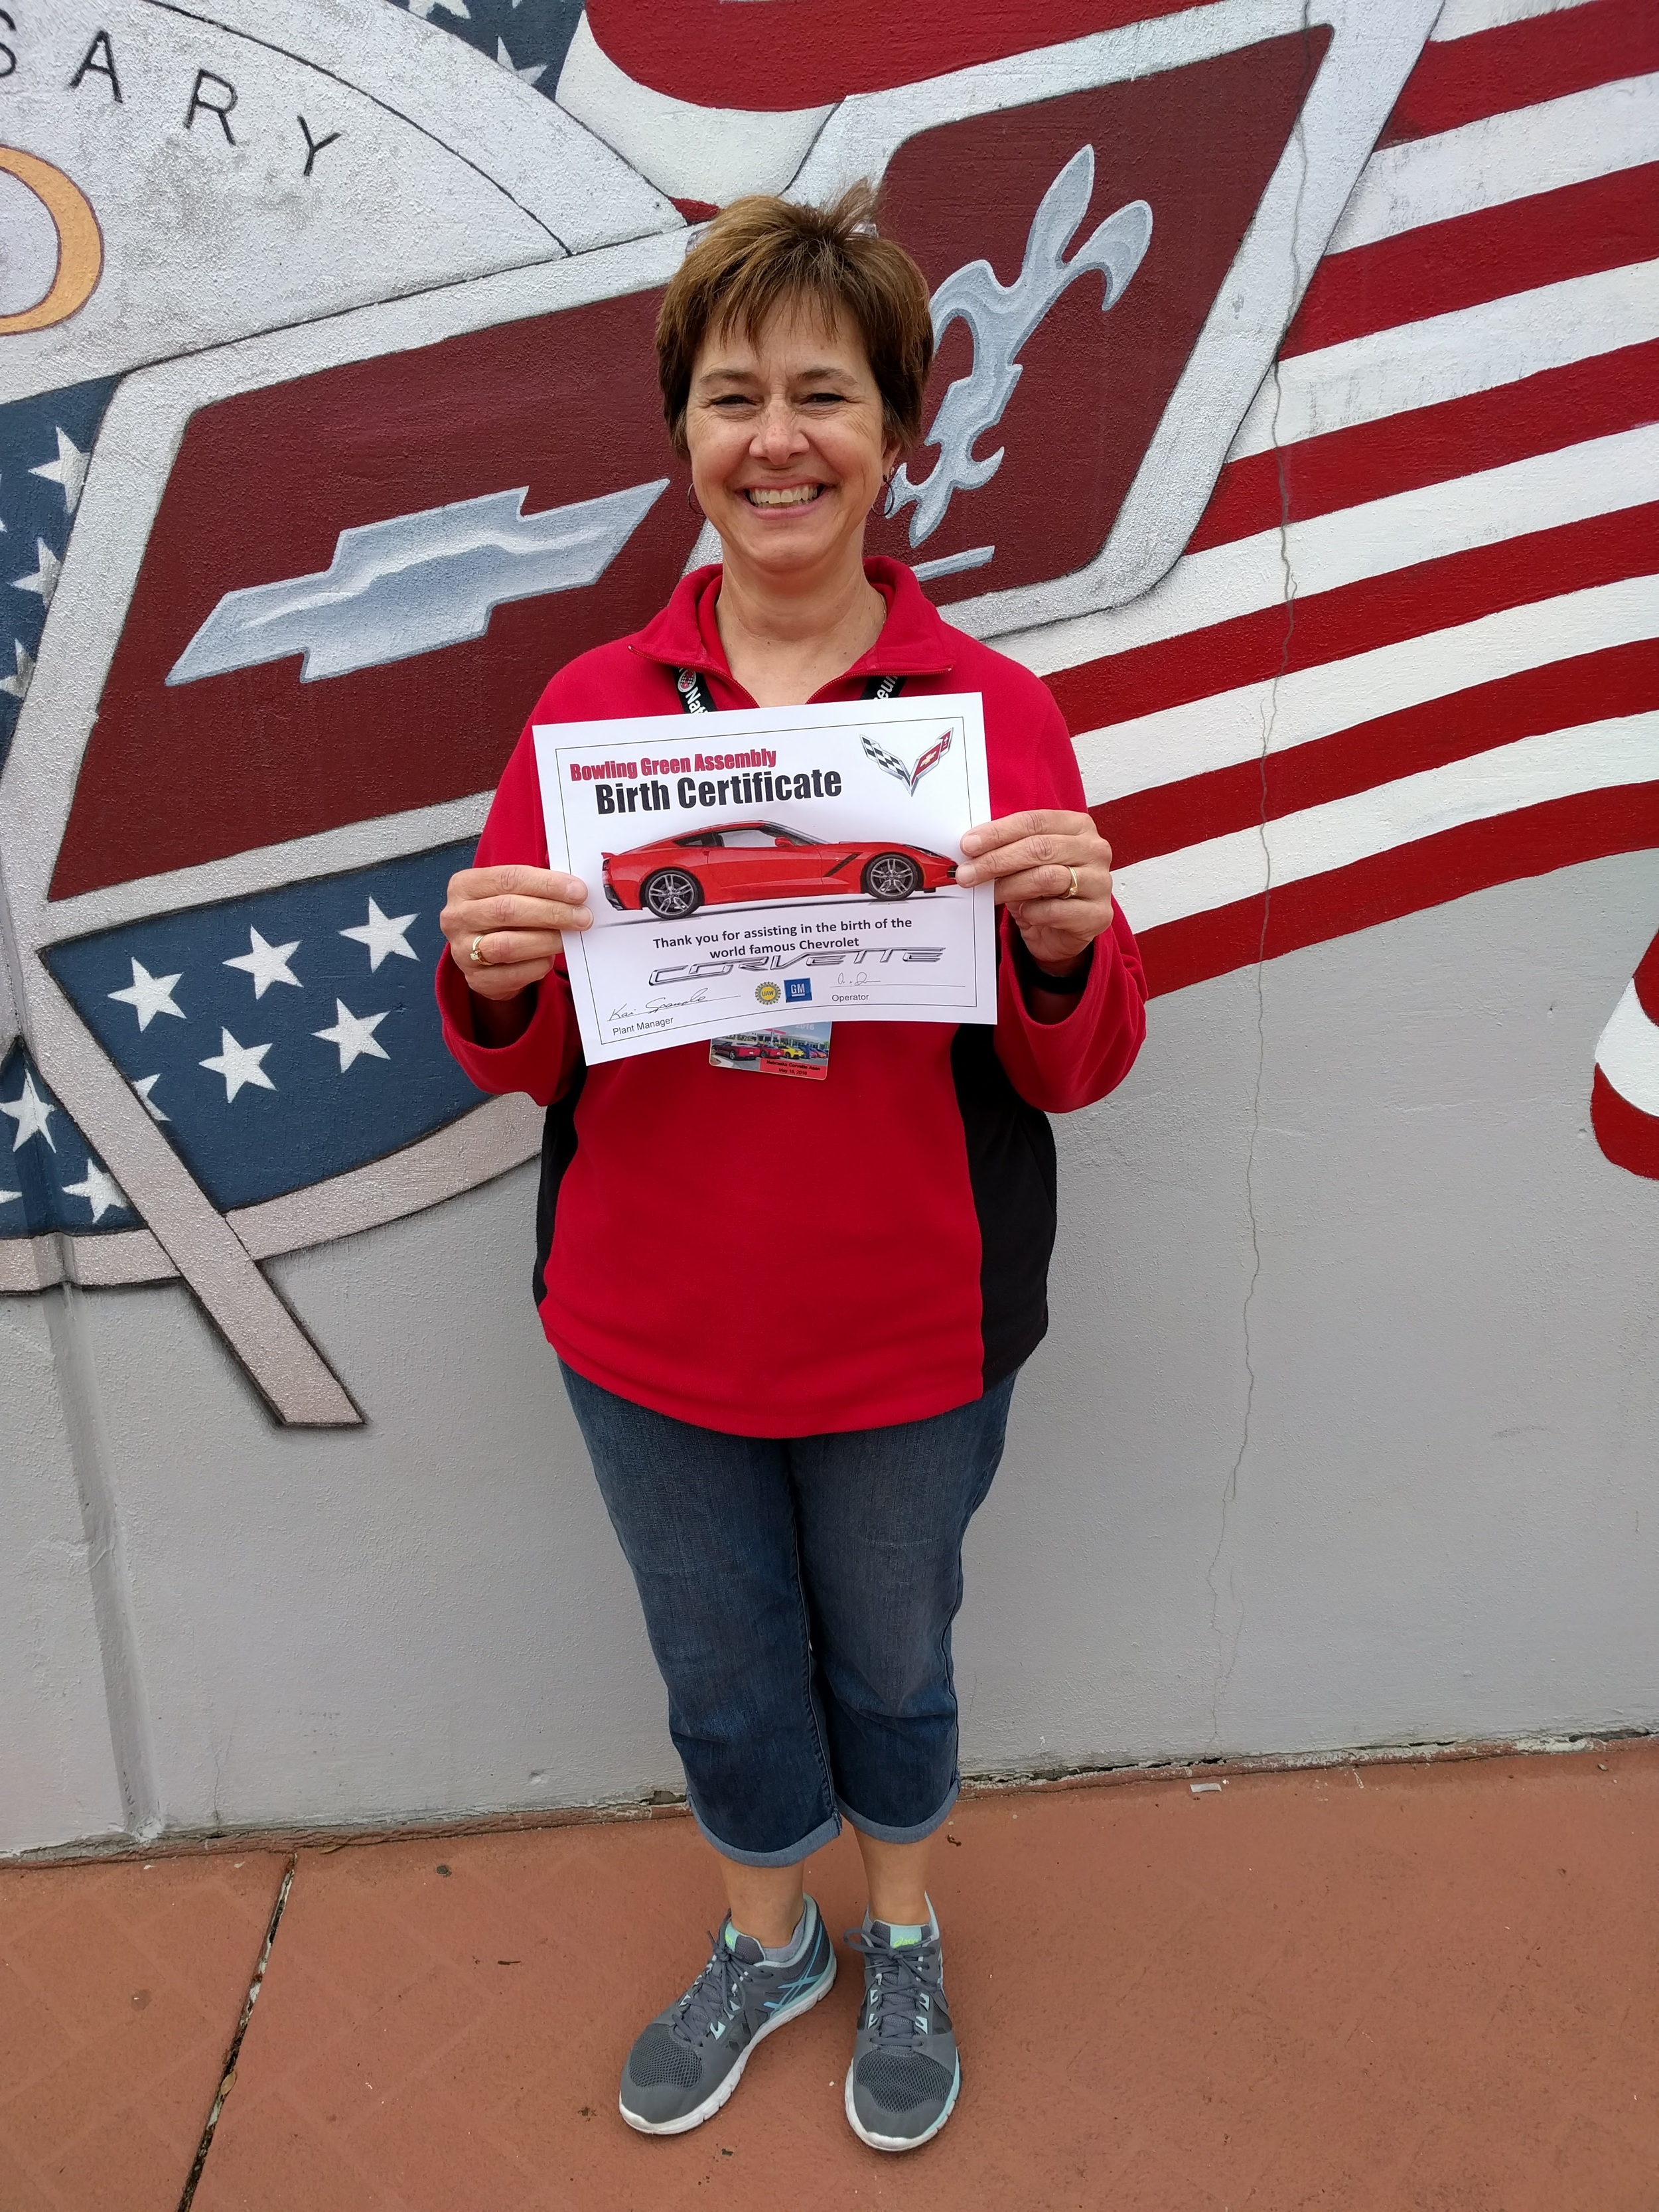 Melinda got to perform the first start of a corvette coming off the assembly line and got a Corvette Birth Certificate.